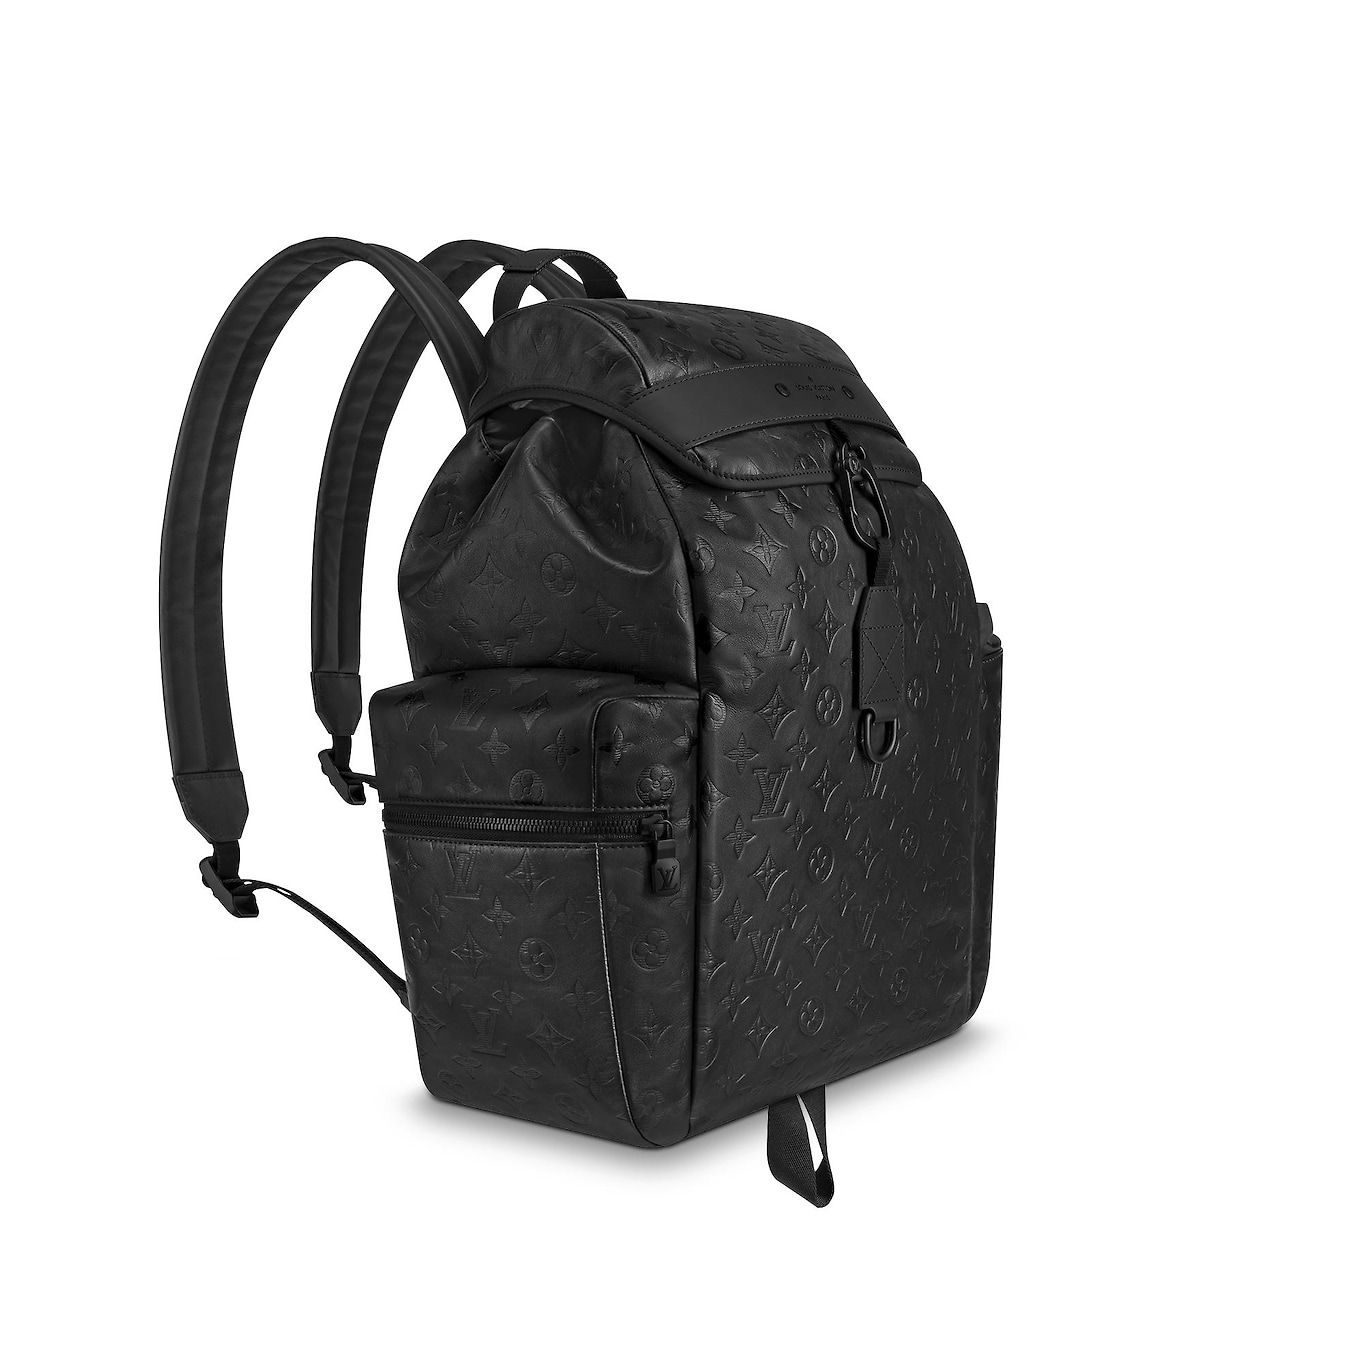 717173fa75b1 View 2 - Monogram Shadow BAGS Discovery Backpack